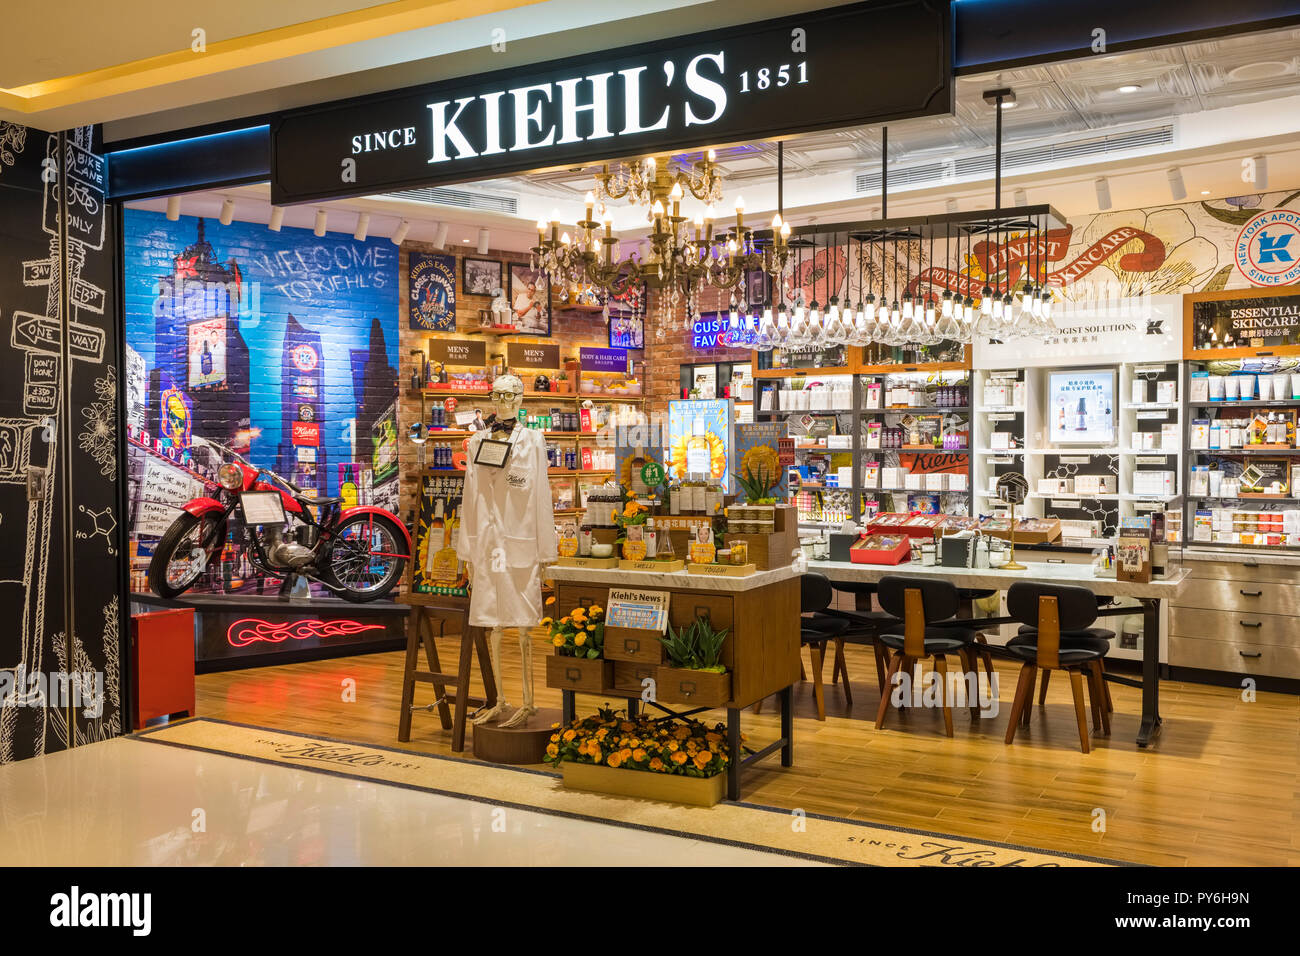 Kiehls store à Shanghai, Chine, Asie Photo Stock